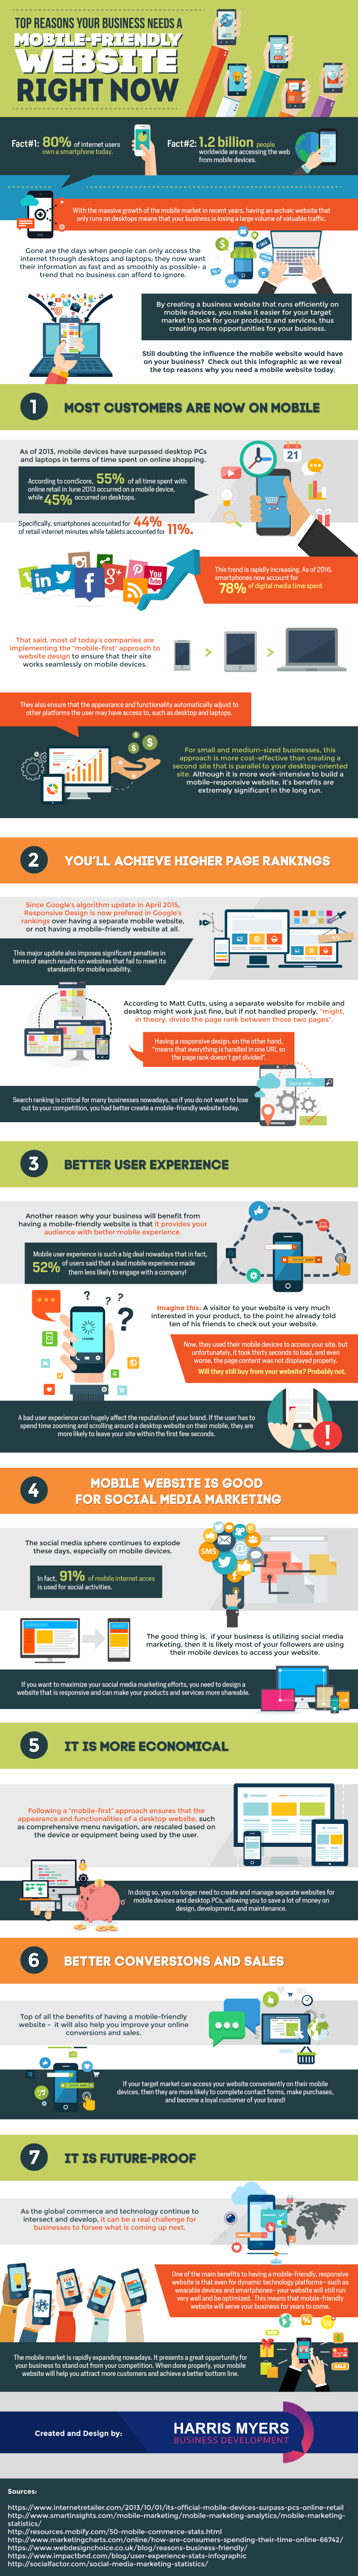 Yiblab-Why-Business-Needs-Mobile-Website-Infographic